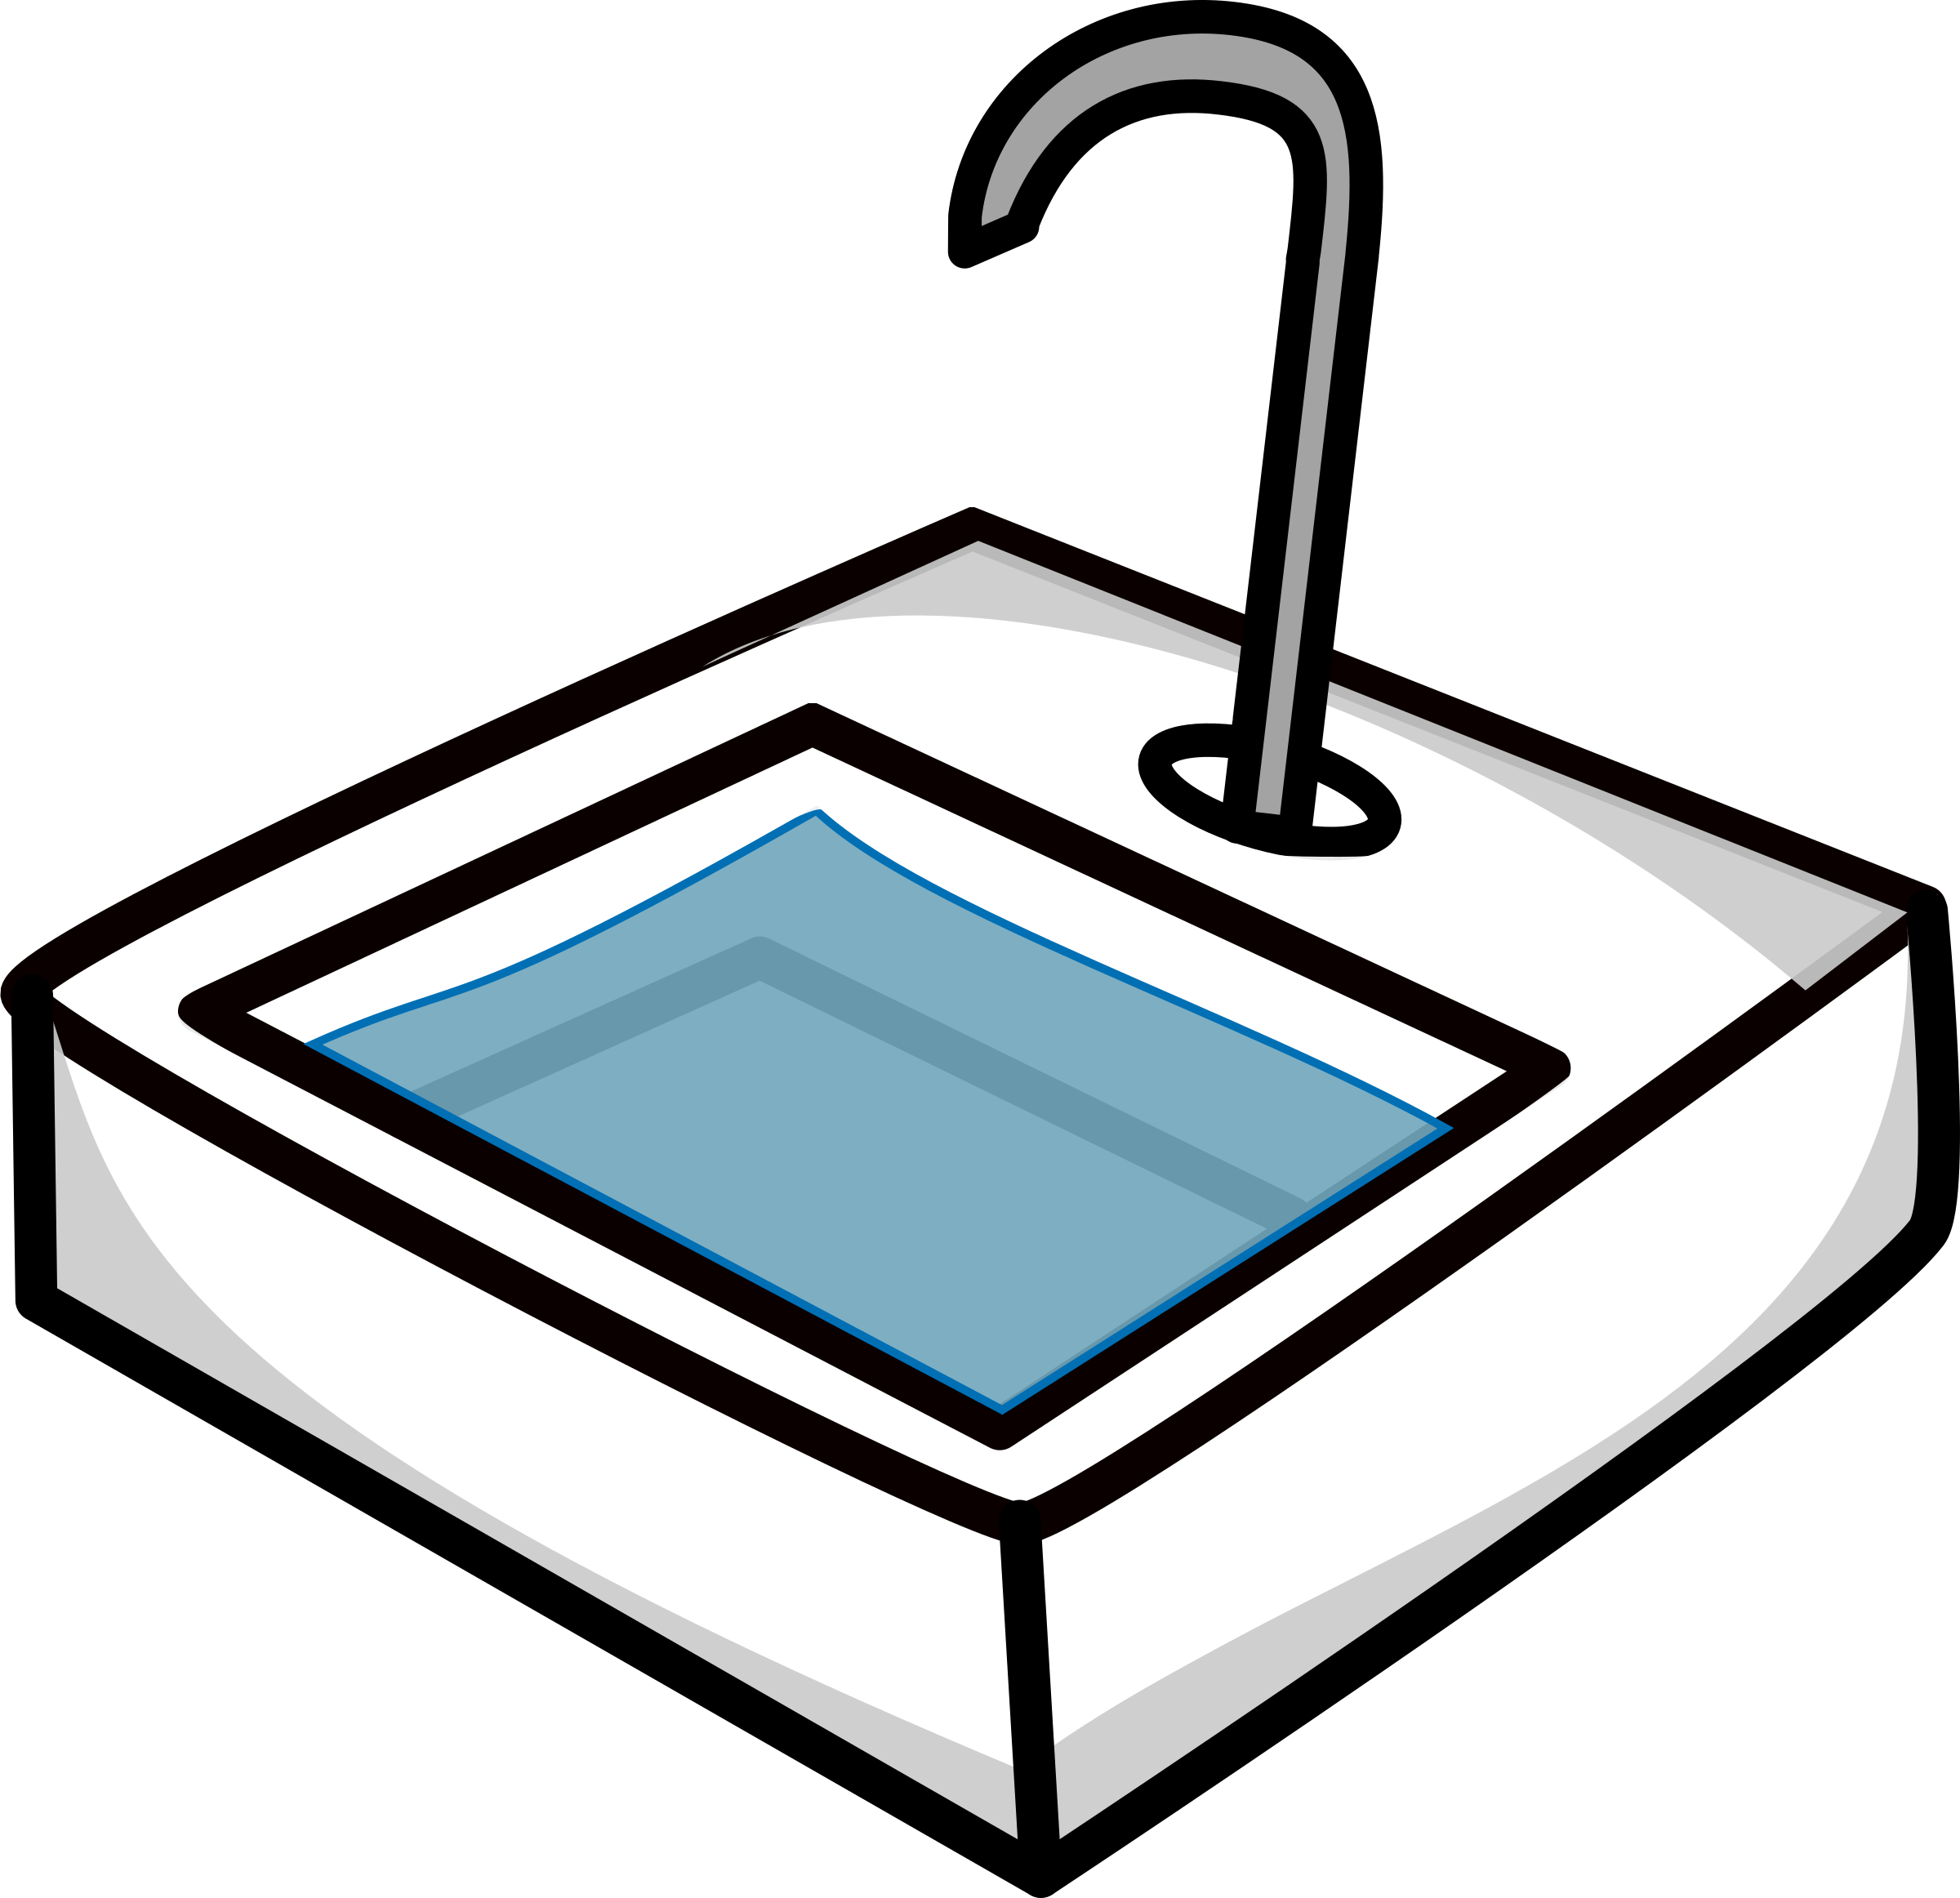 graphic download Clipart kitchen sink. Big image png